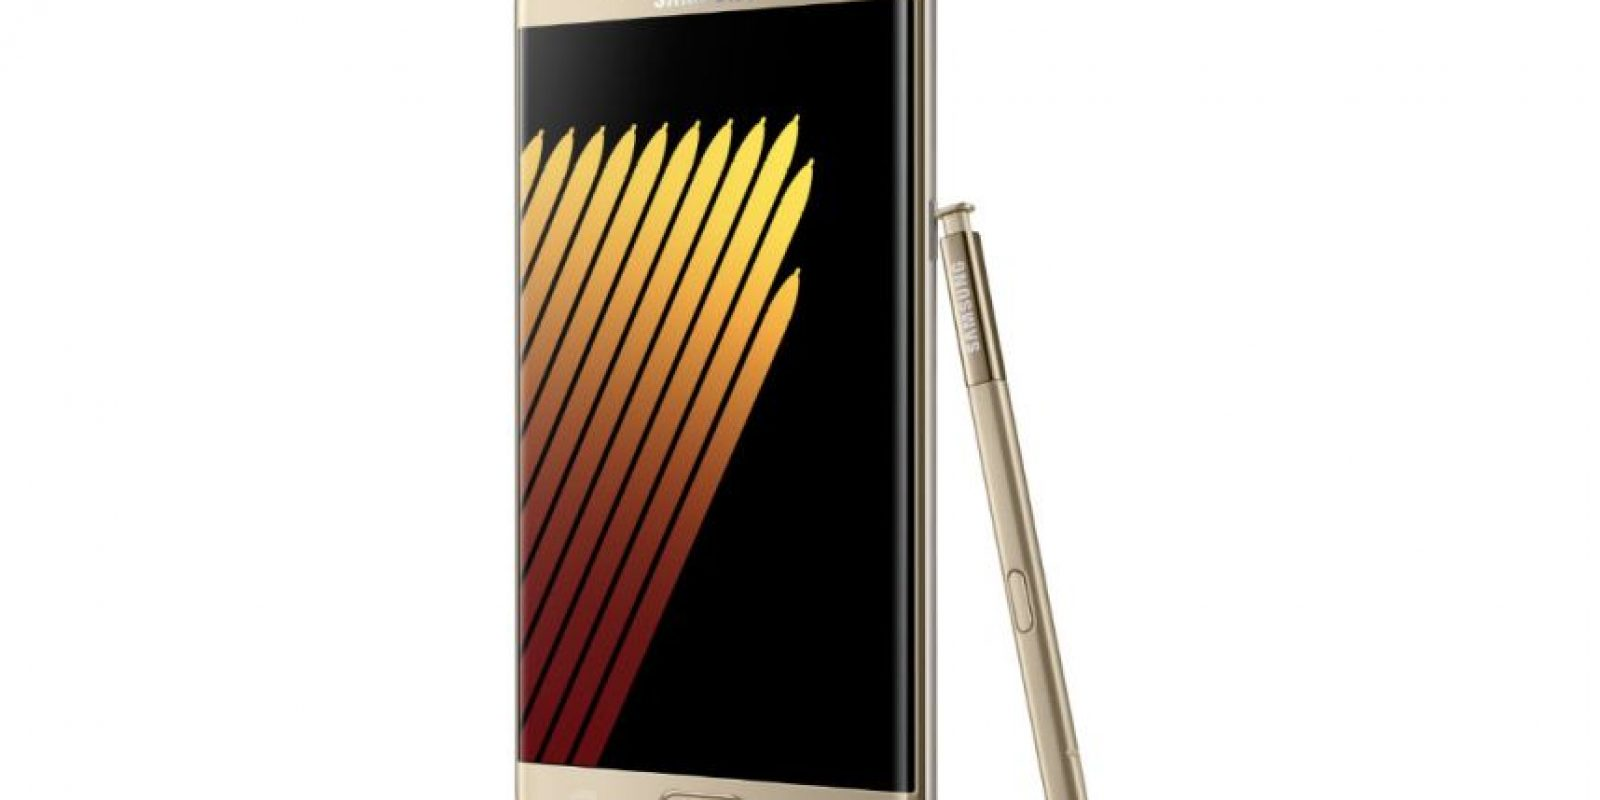 El Galaxy Note 7 estará disponible en 3 colores: Foto: Samsung